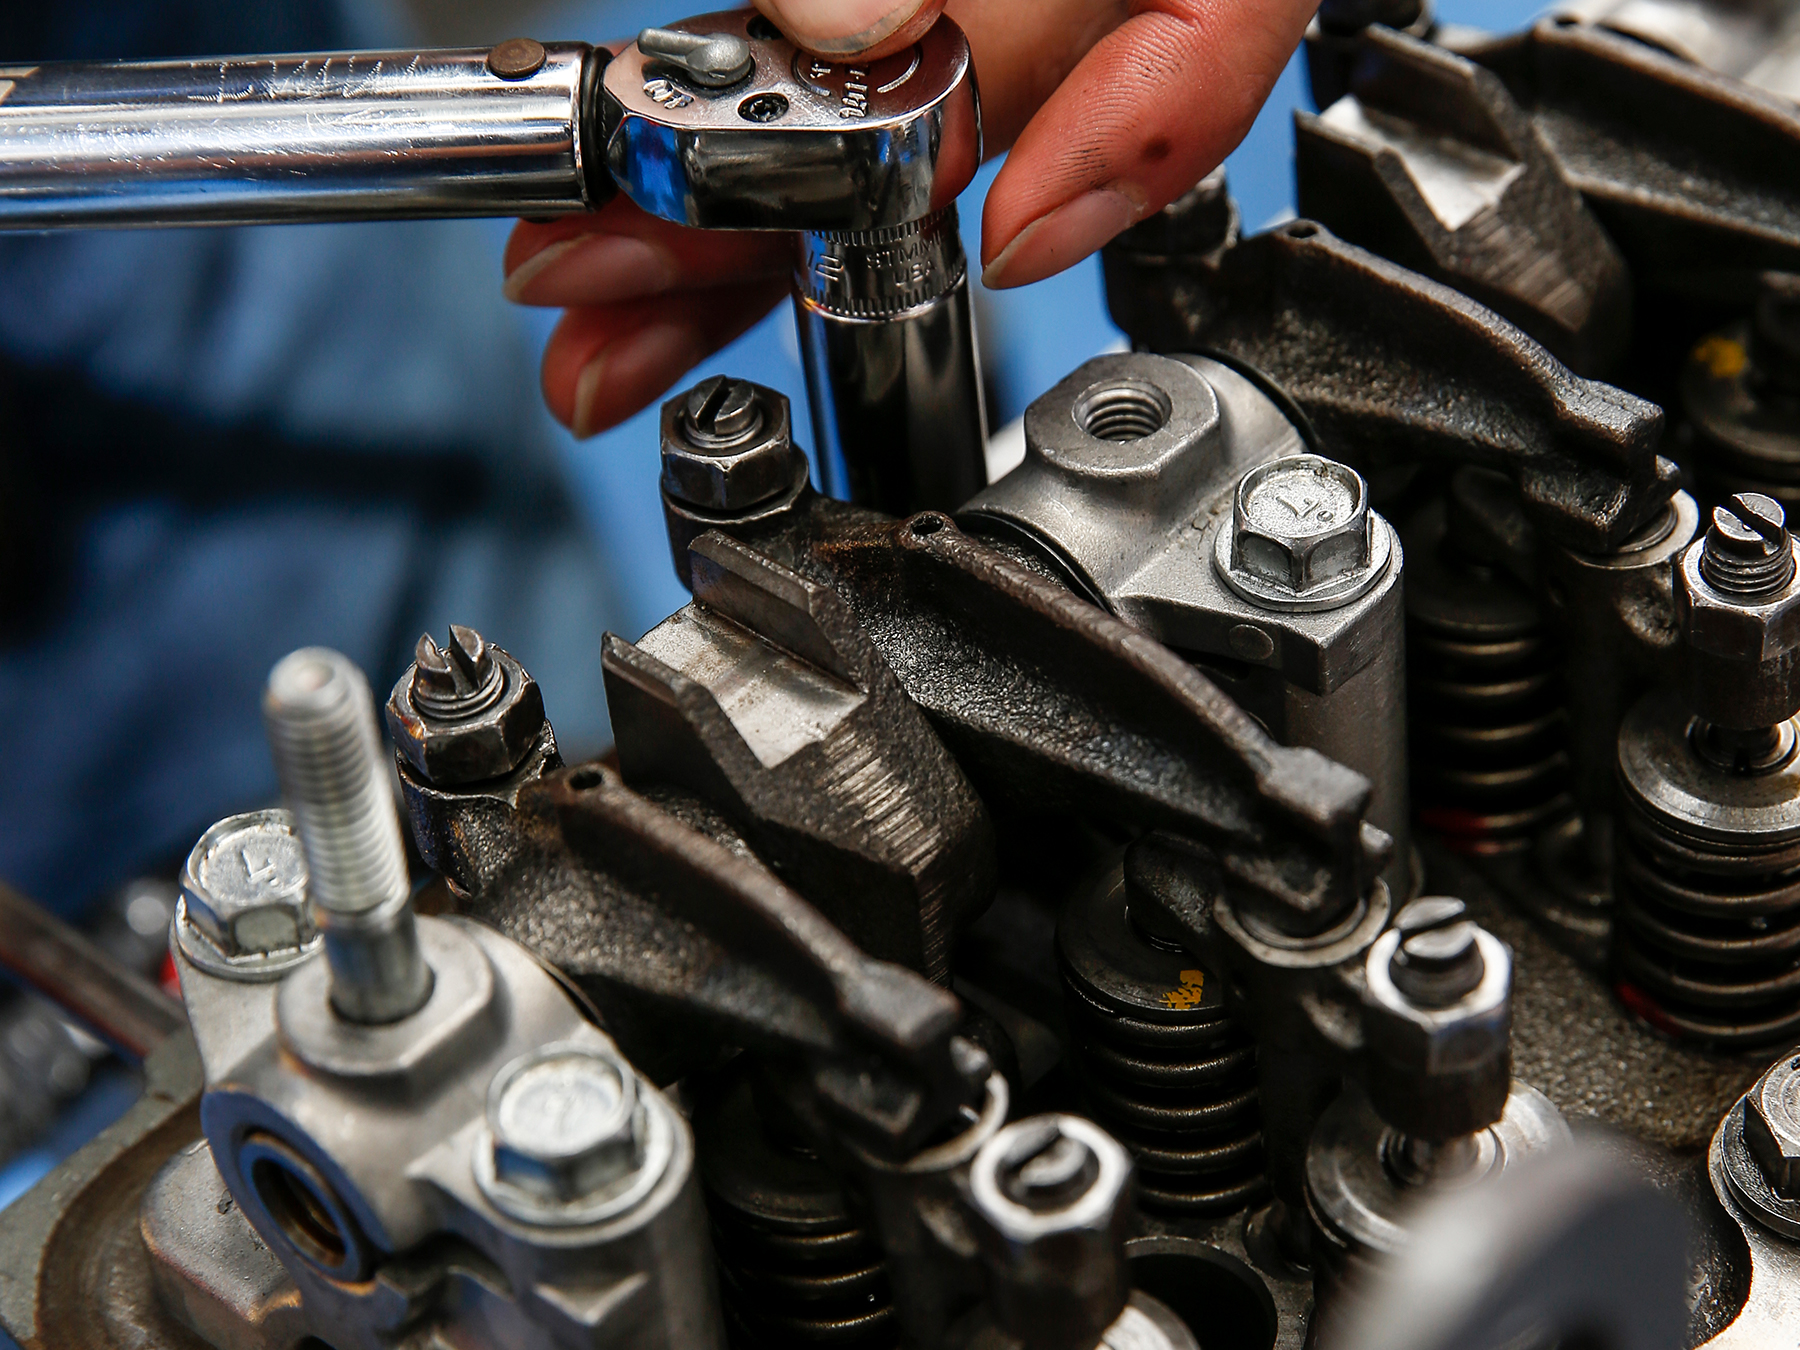 Extreme close-up of MMI student wrenching on an engine